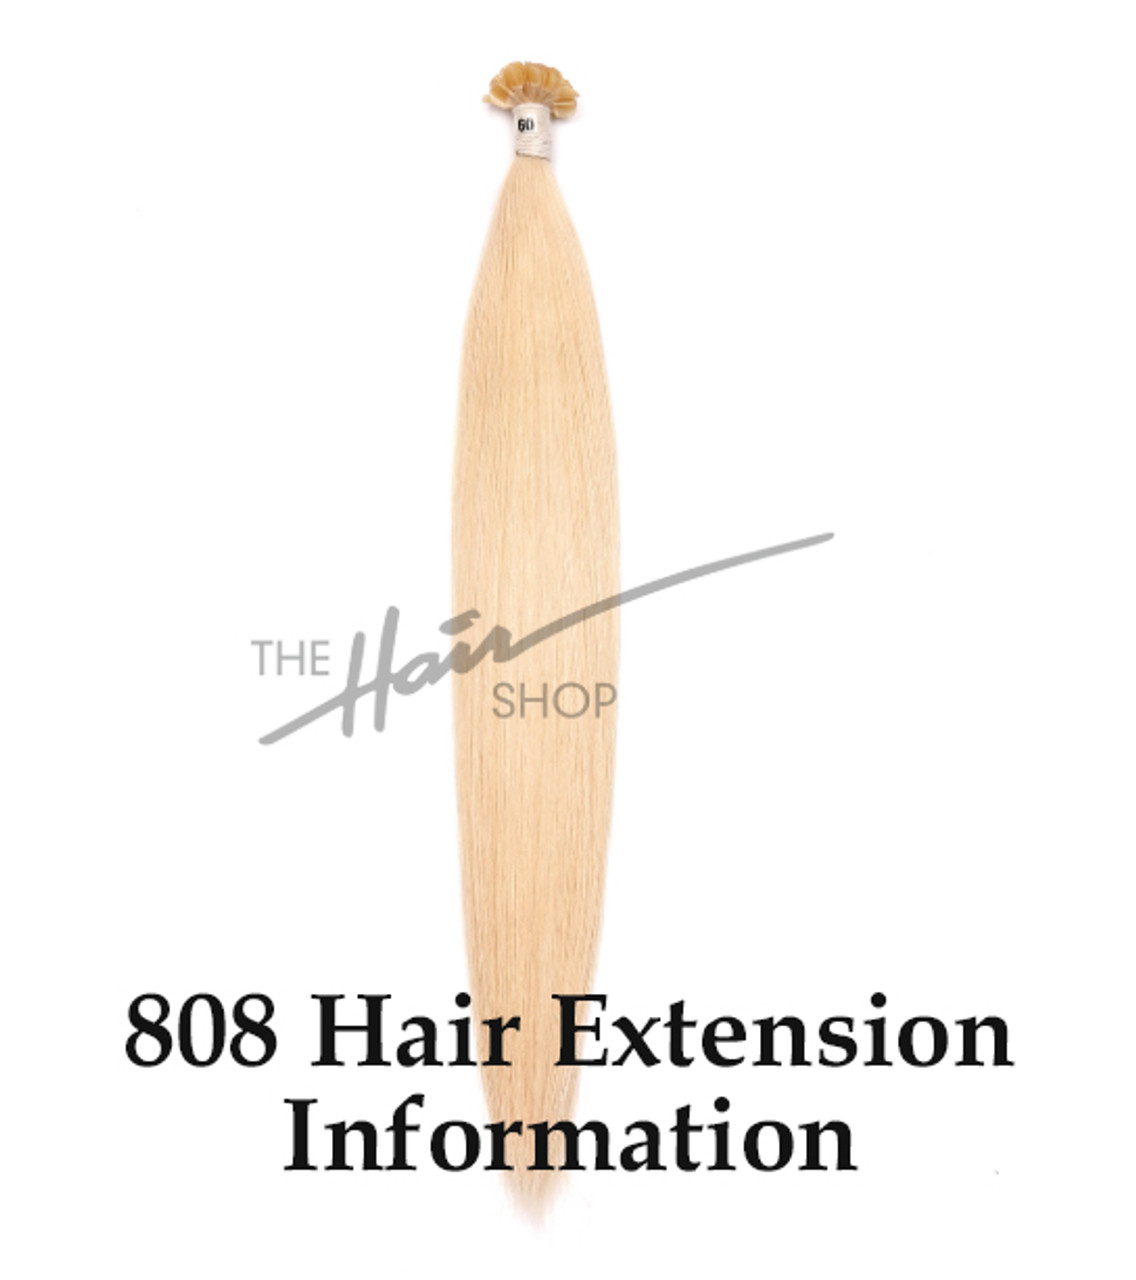 808 hair extension information